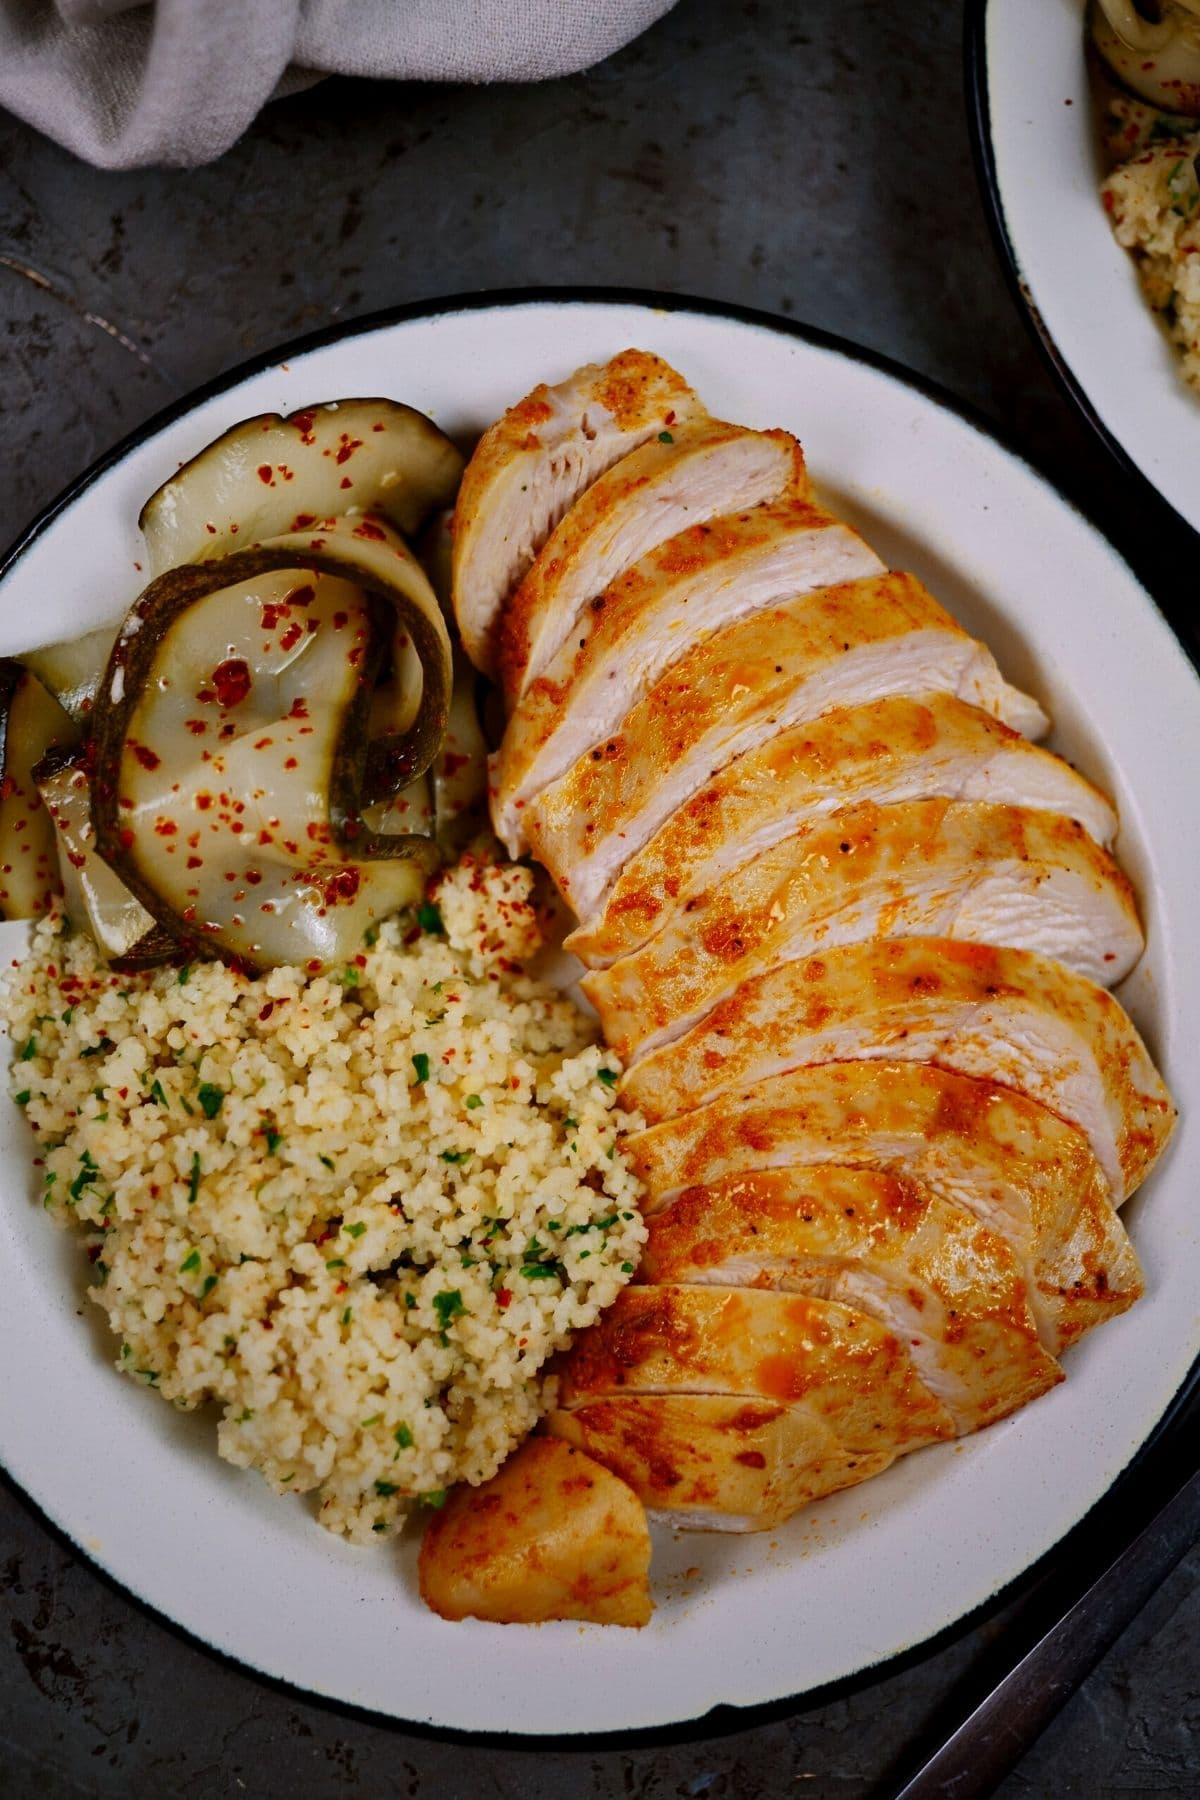 Sliced chicken breast on white plate with rice and pickle